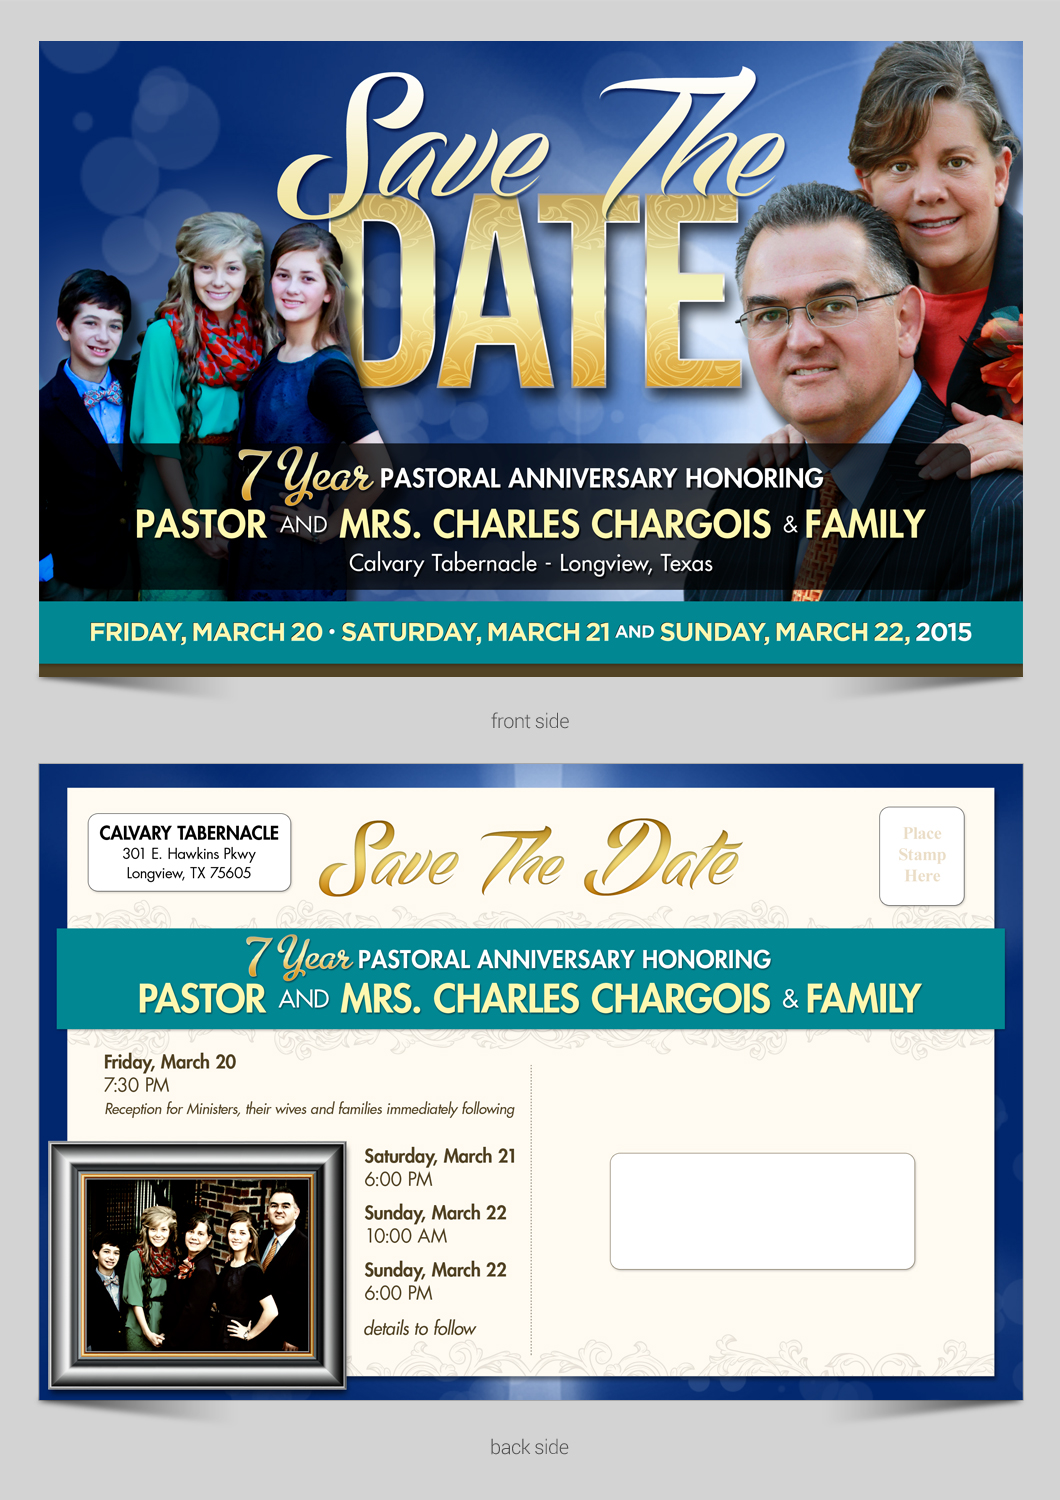 Save the date card design for church anniversery  - Religion and Spirituality